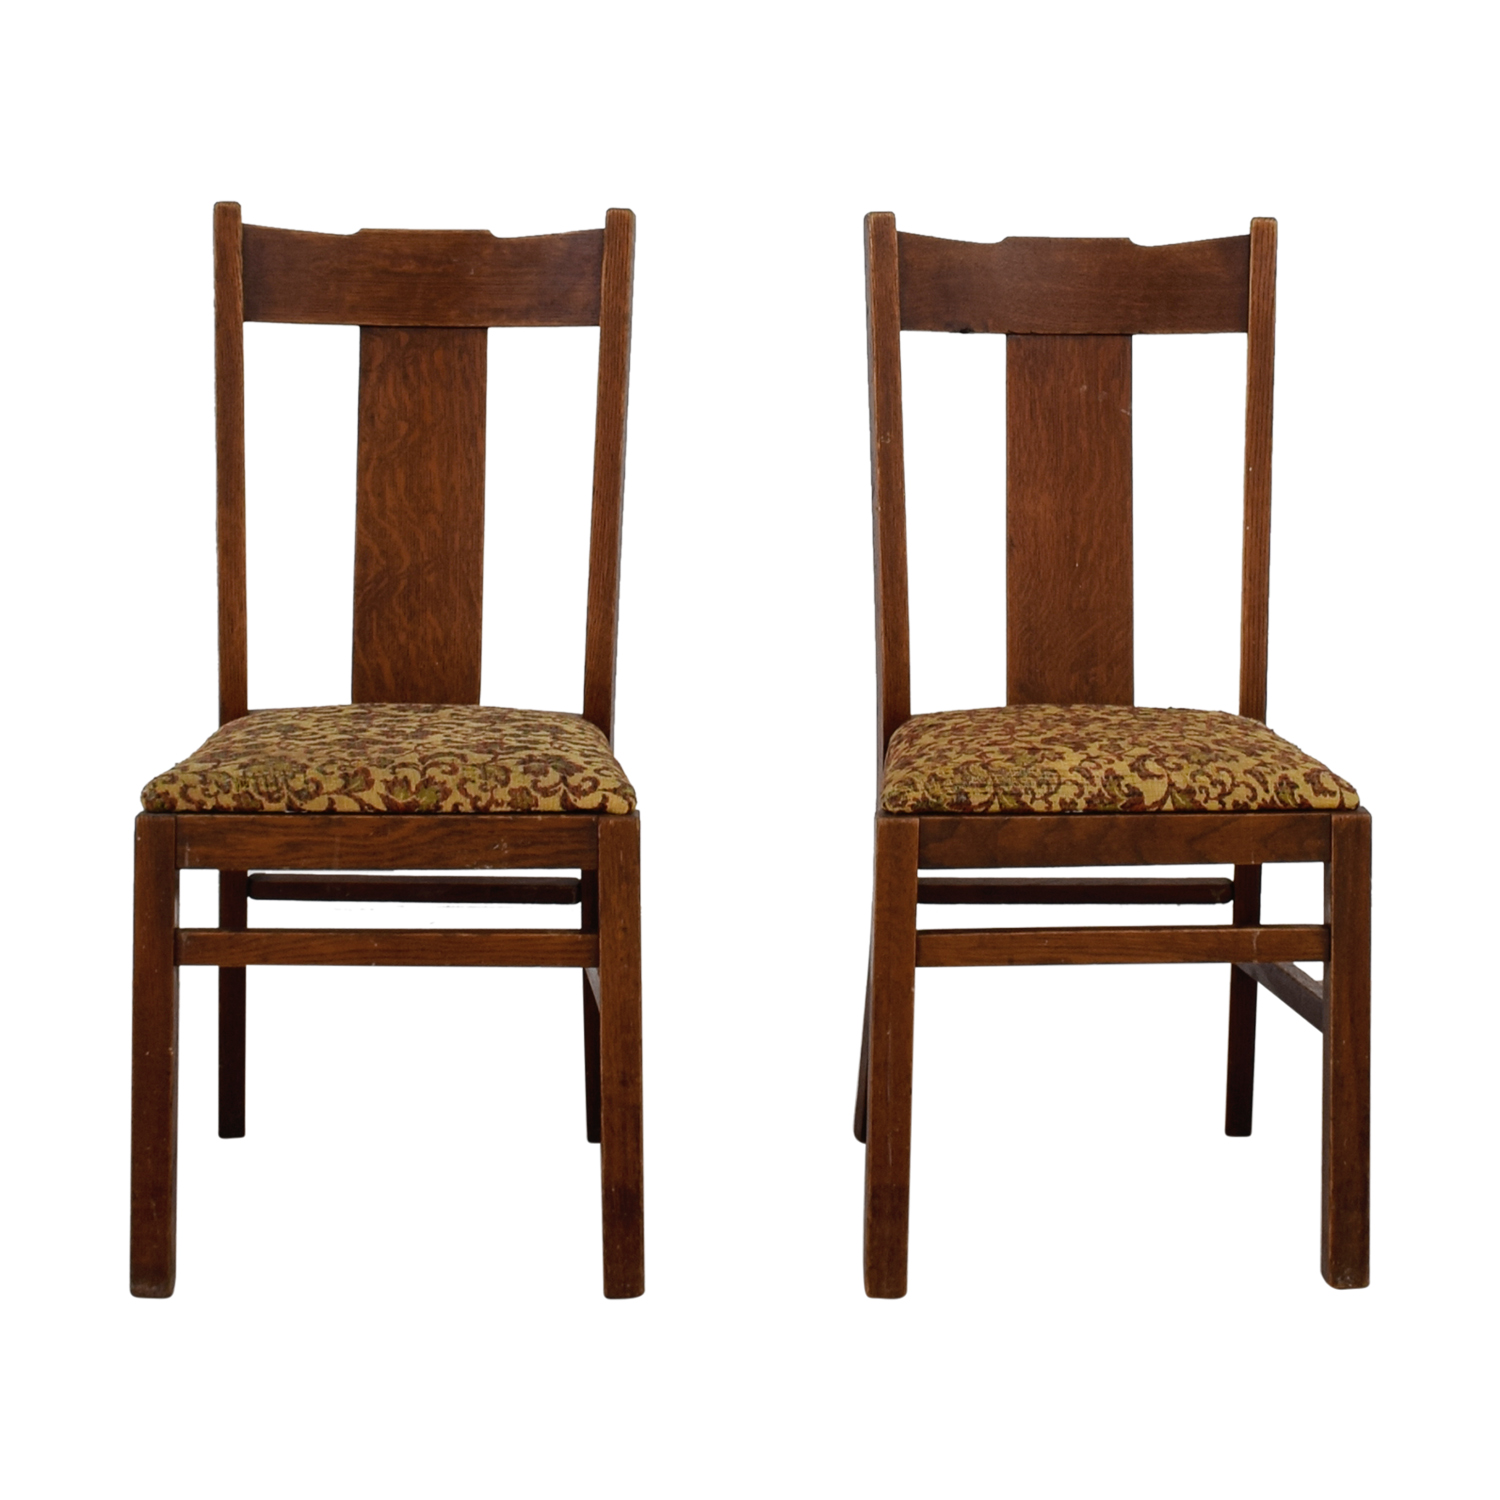 Antique Mission Upholstered Chairs coupon ... - 87% OFF - Antique Mission Upholstered Chairs / Chairs